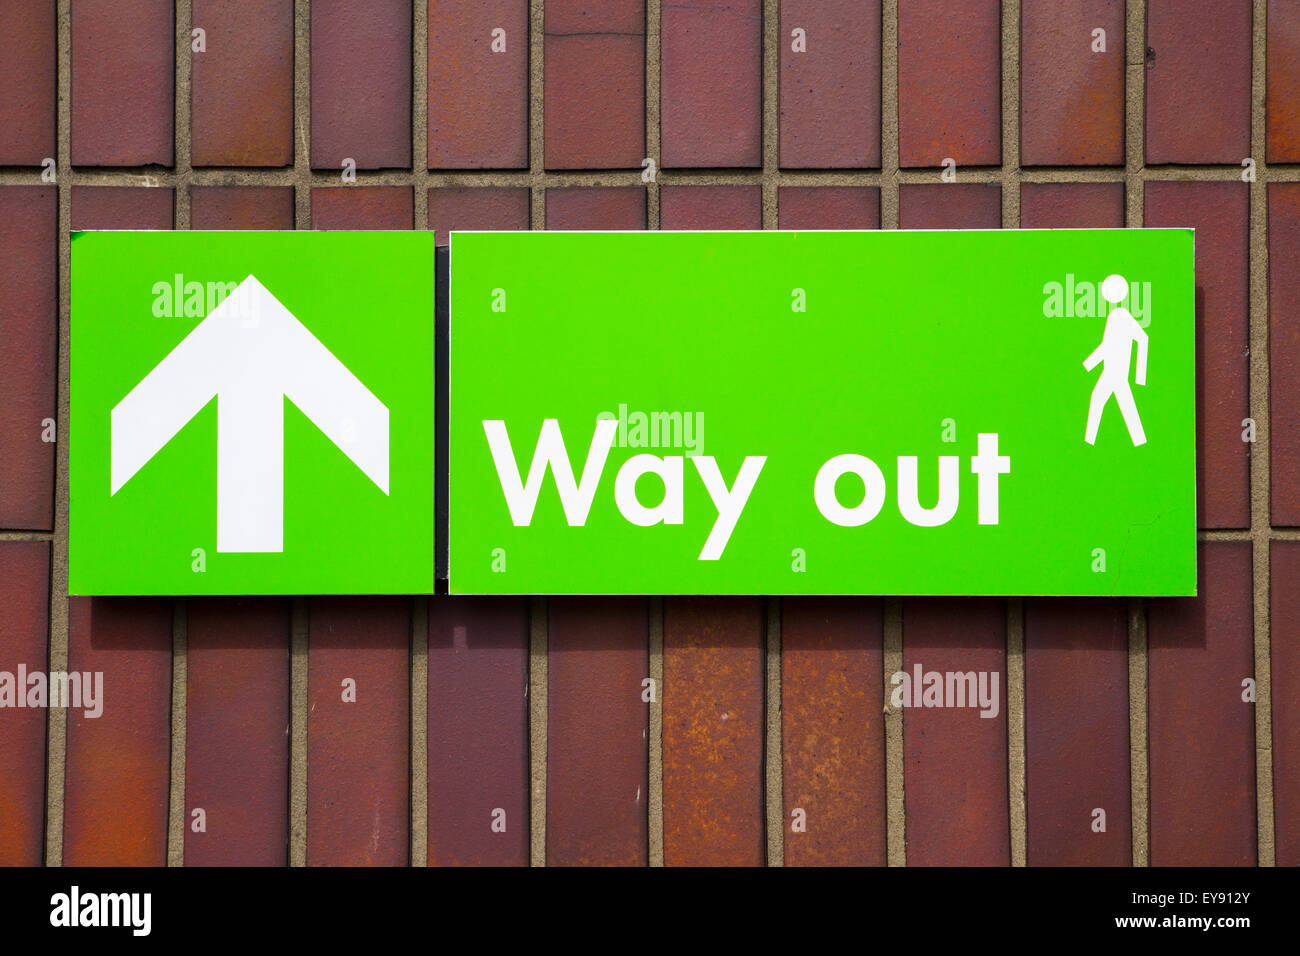 Way out sign with white writing and green background - Stock Image